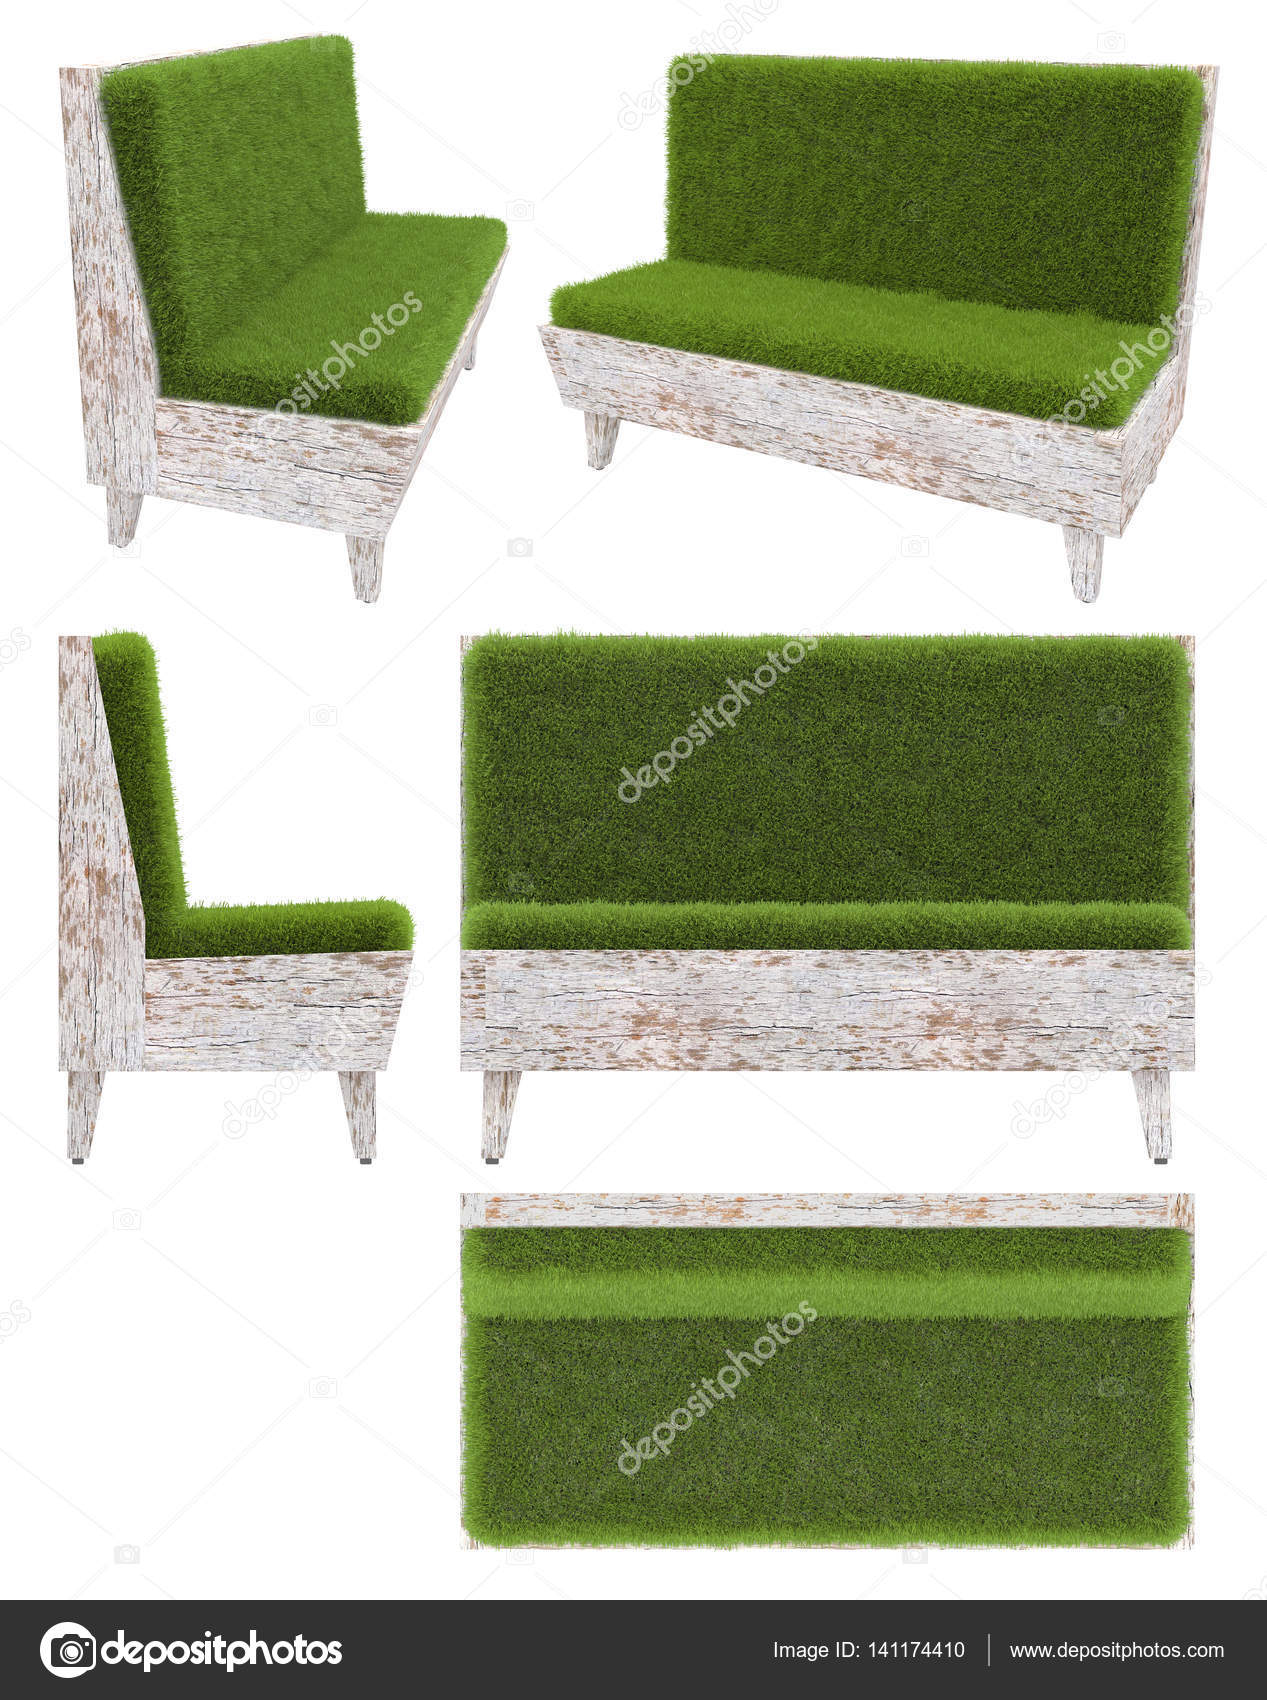 sofa in old wood with grass cover garden furniture top view side view - Garden Furniture Top View